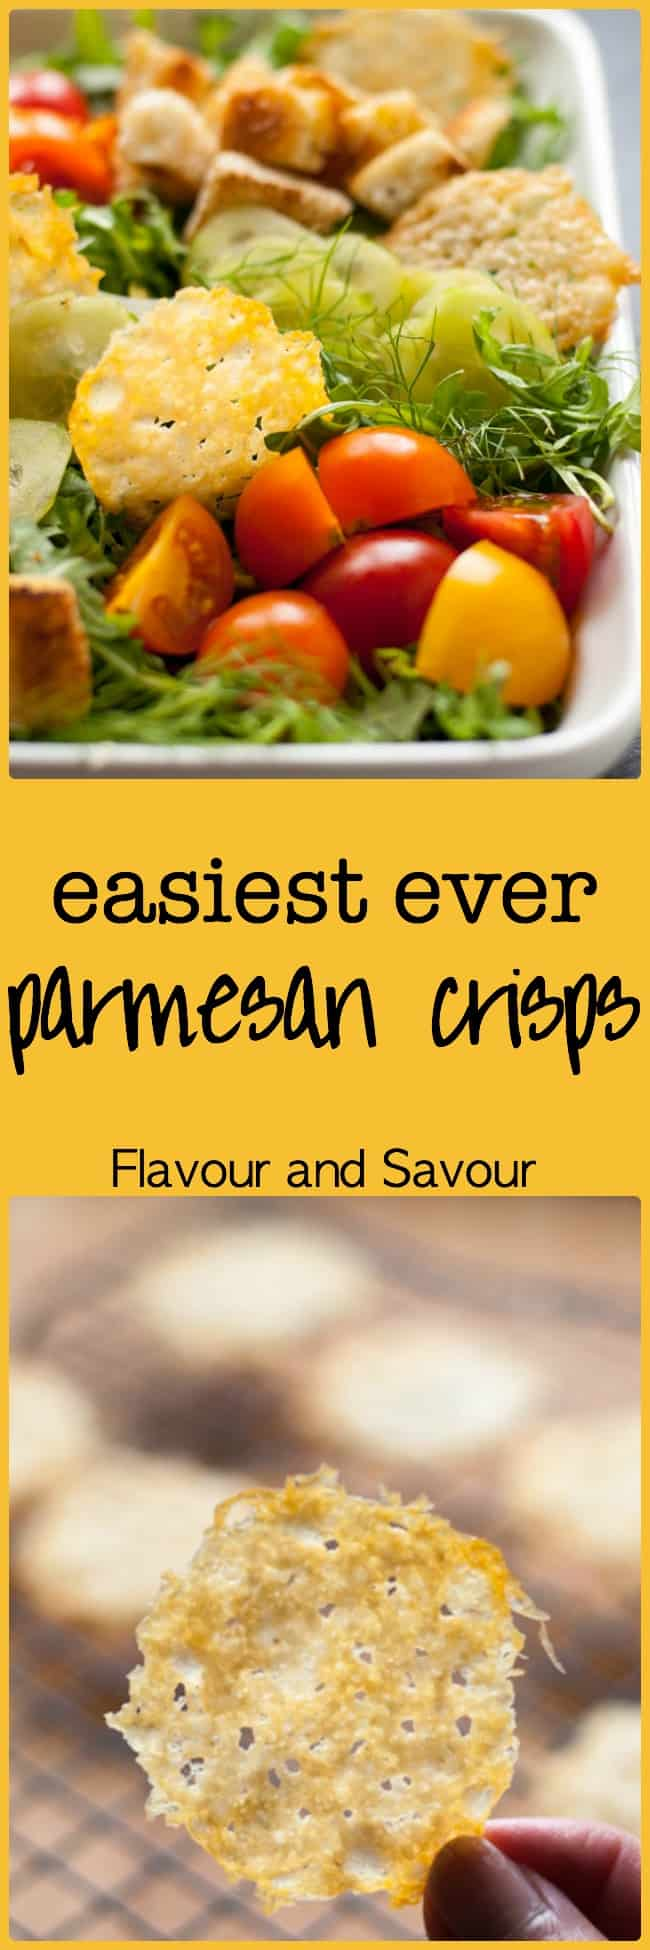 Easiest Ever Parmesan Crisps. One ingredient. Two steps. Delicious cheesy crisps that everyone loves.